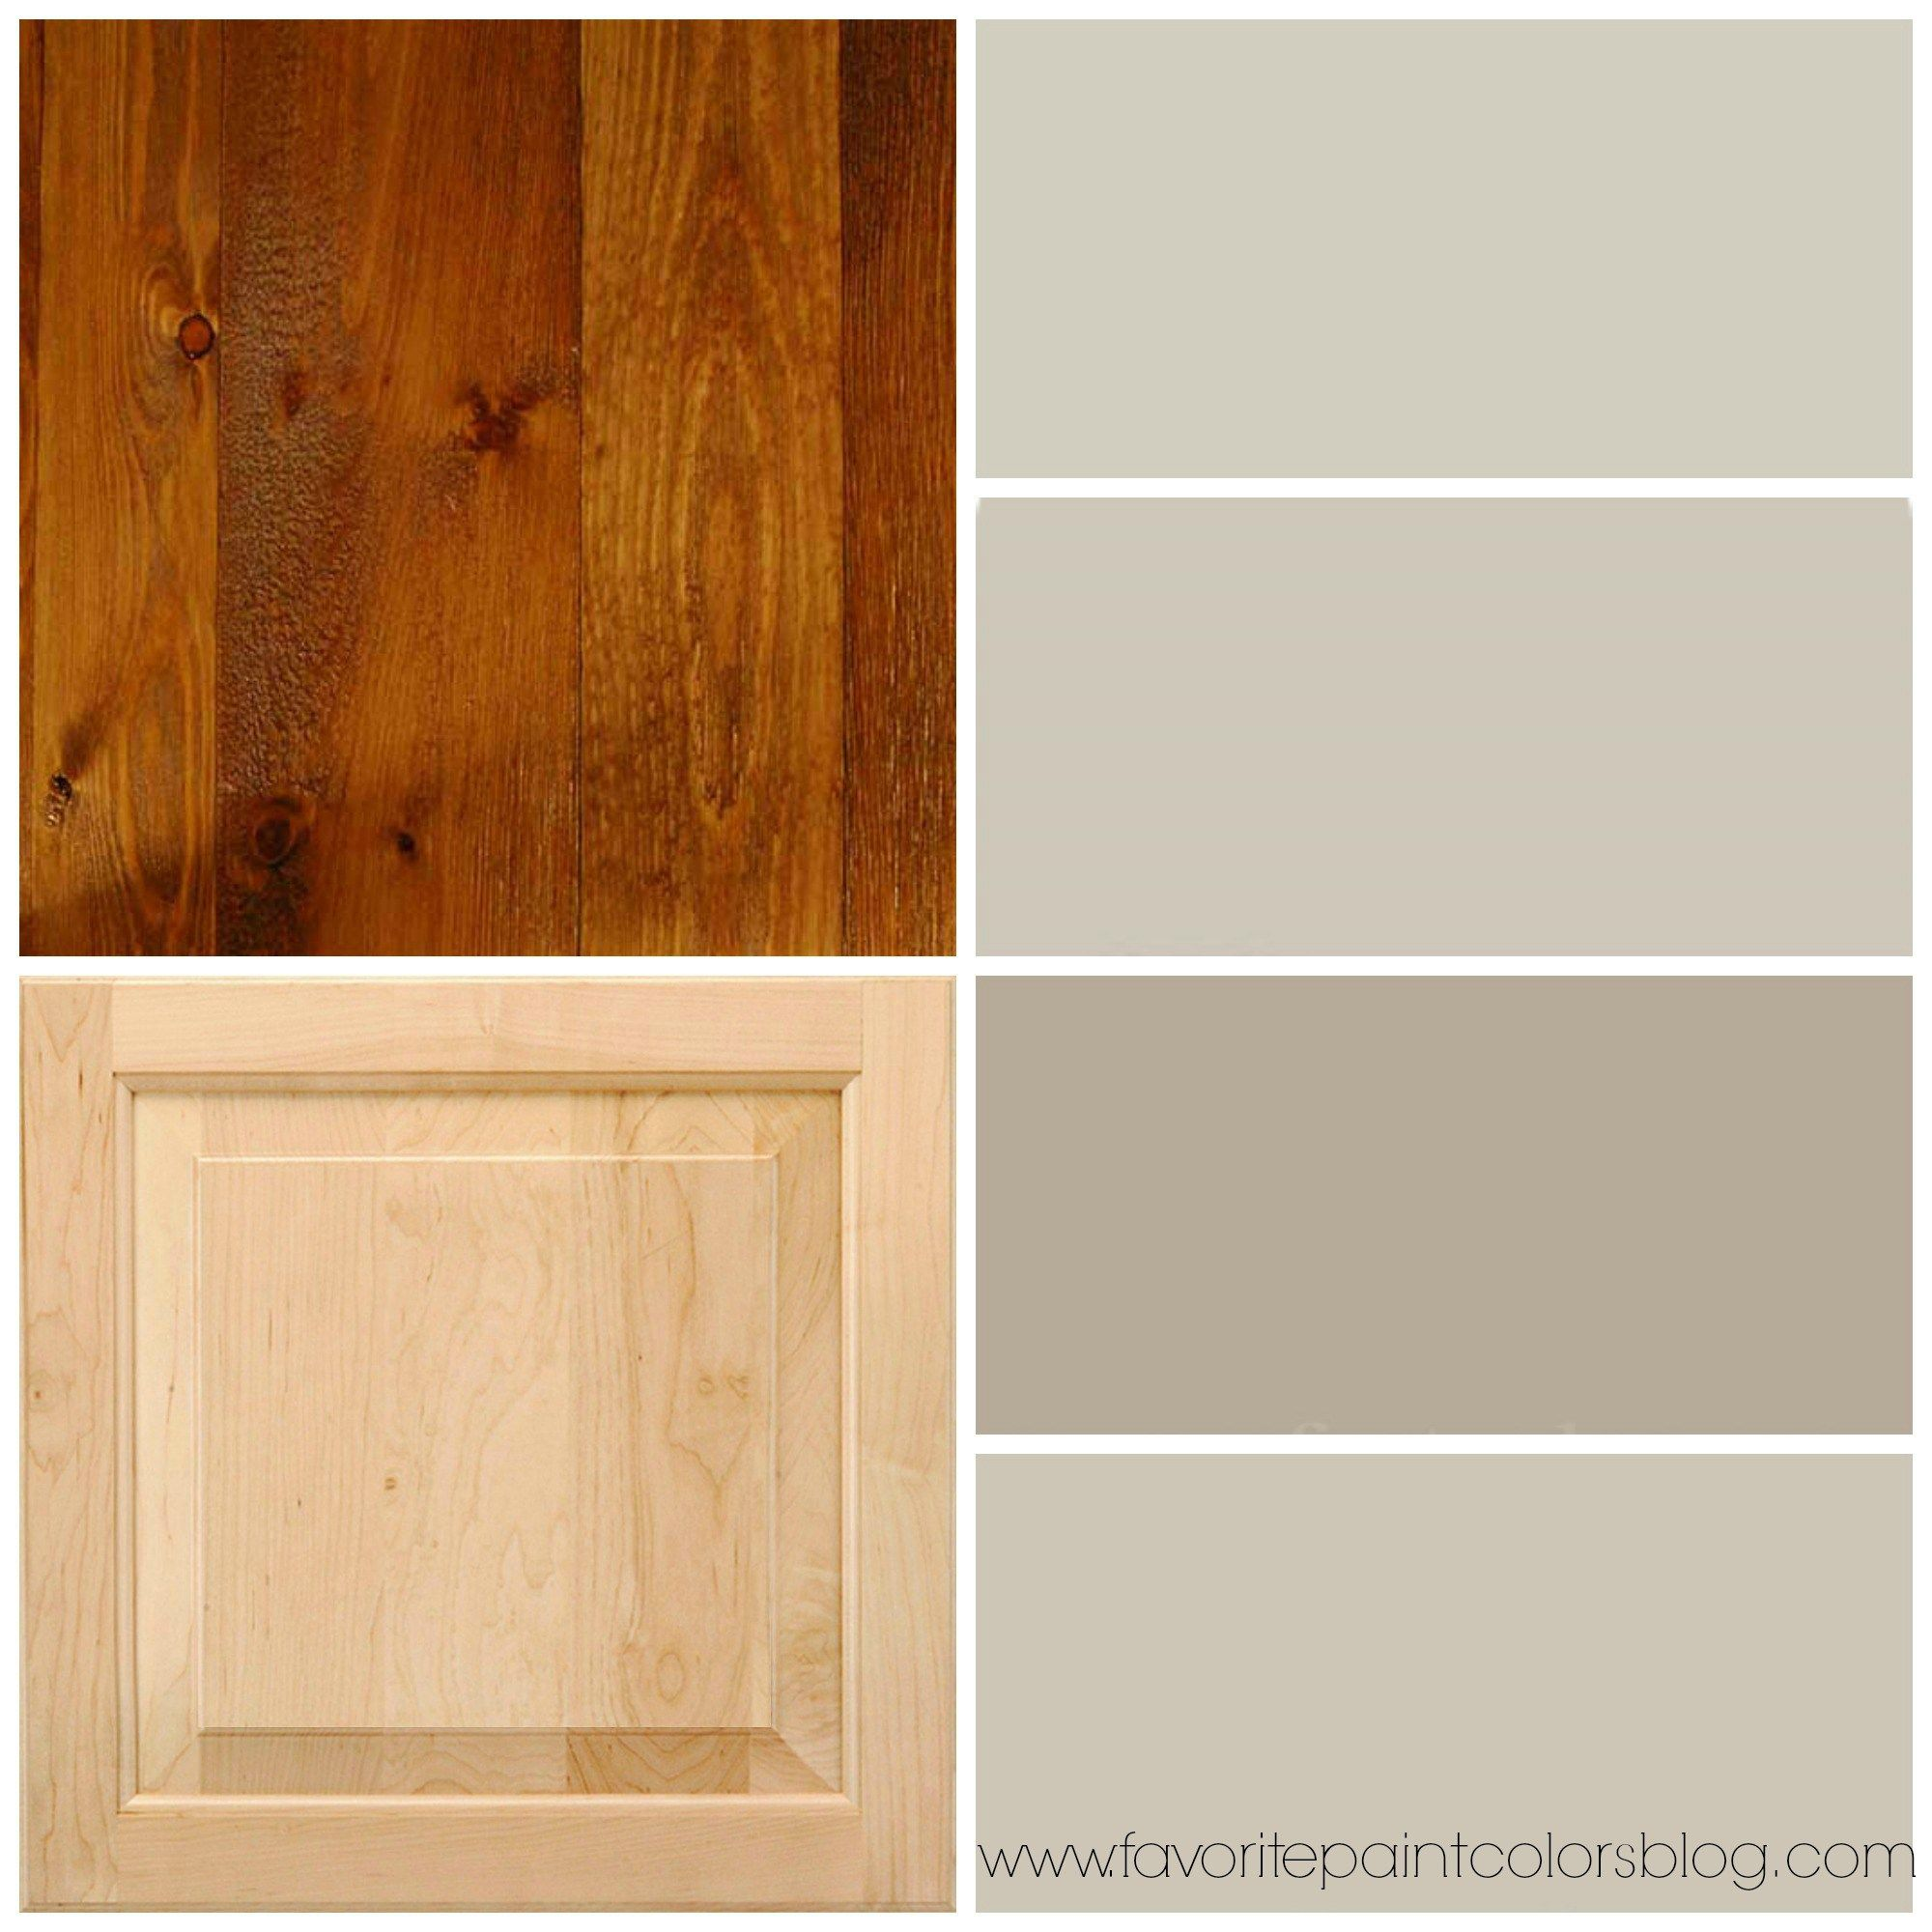 Reader S Question More Paint Colors To Go With Wood Red Pine